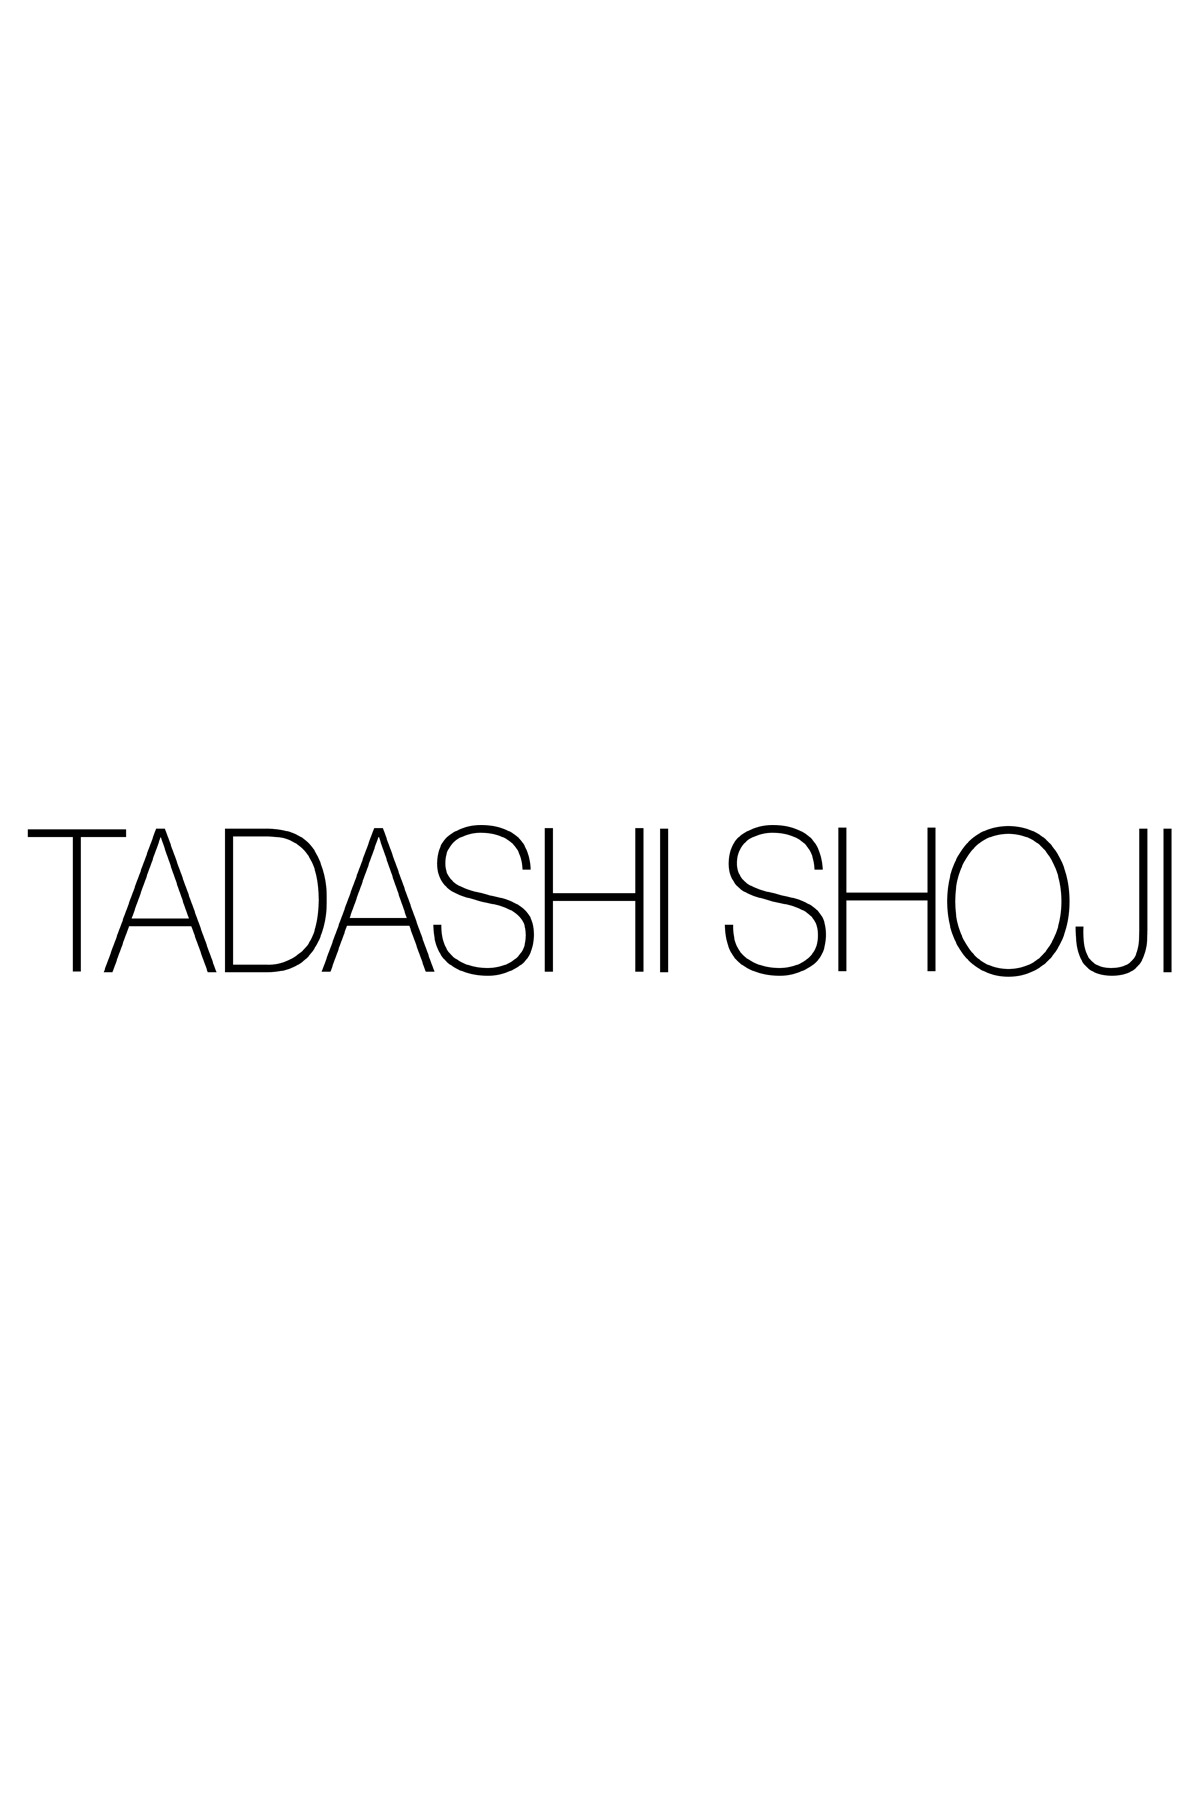 Alexandra Embroidered Lace Dress - PLUS SIZE | Tadashi Shoji